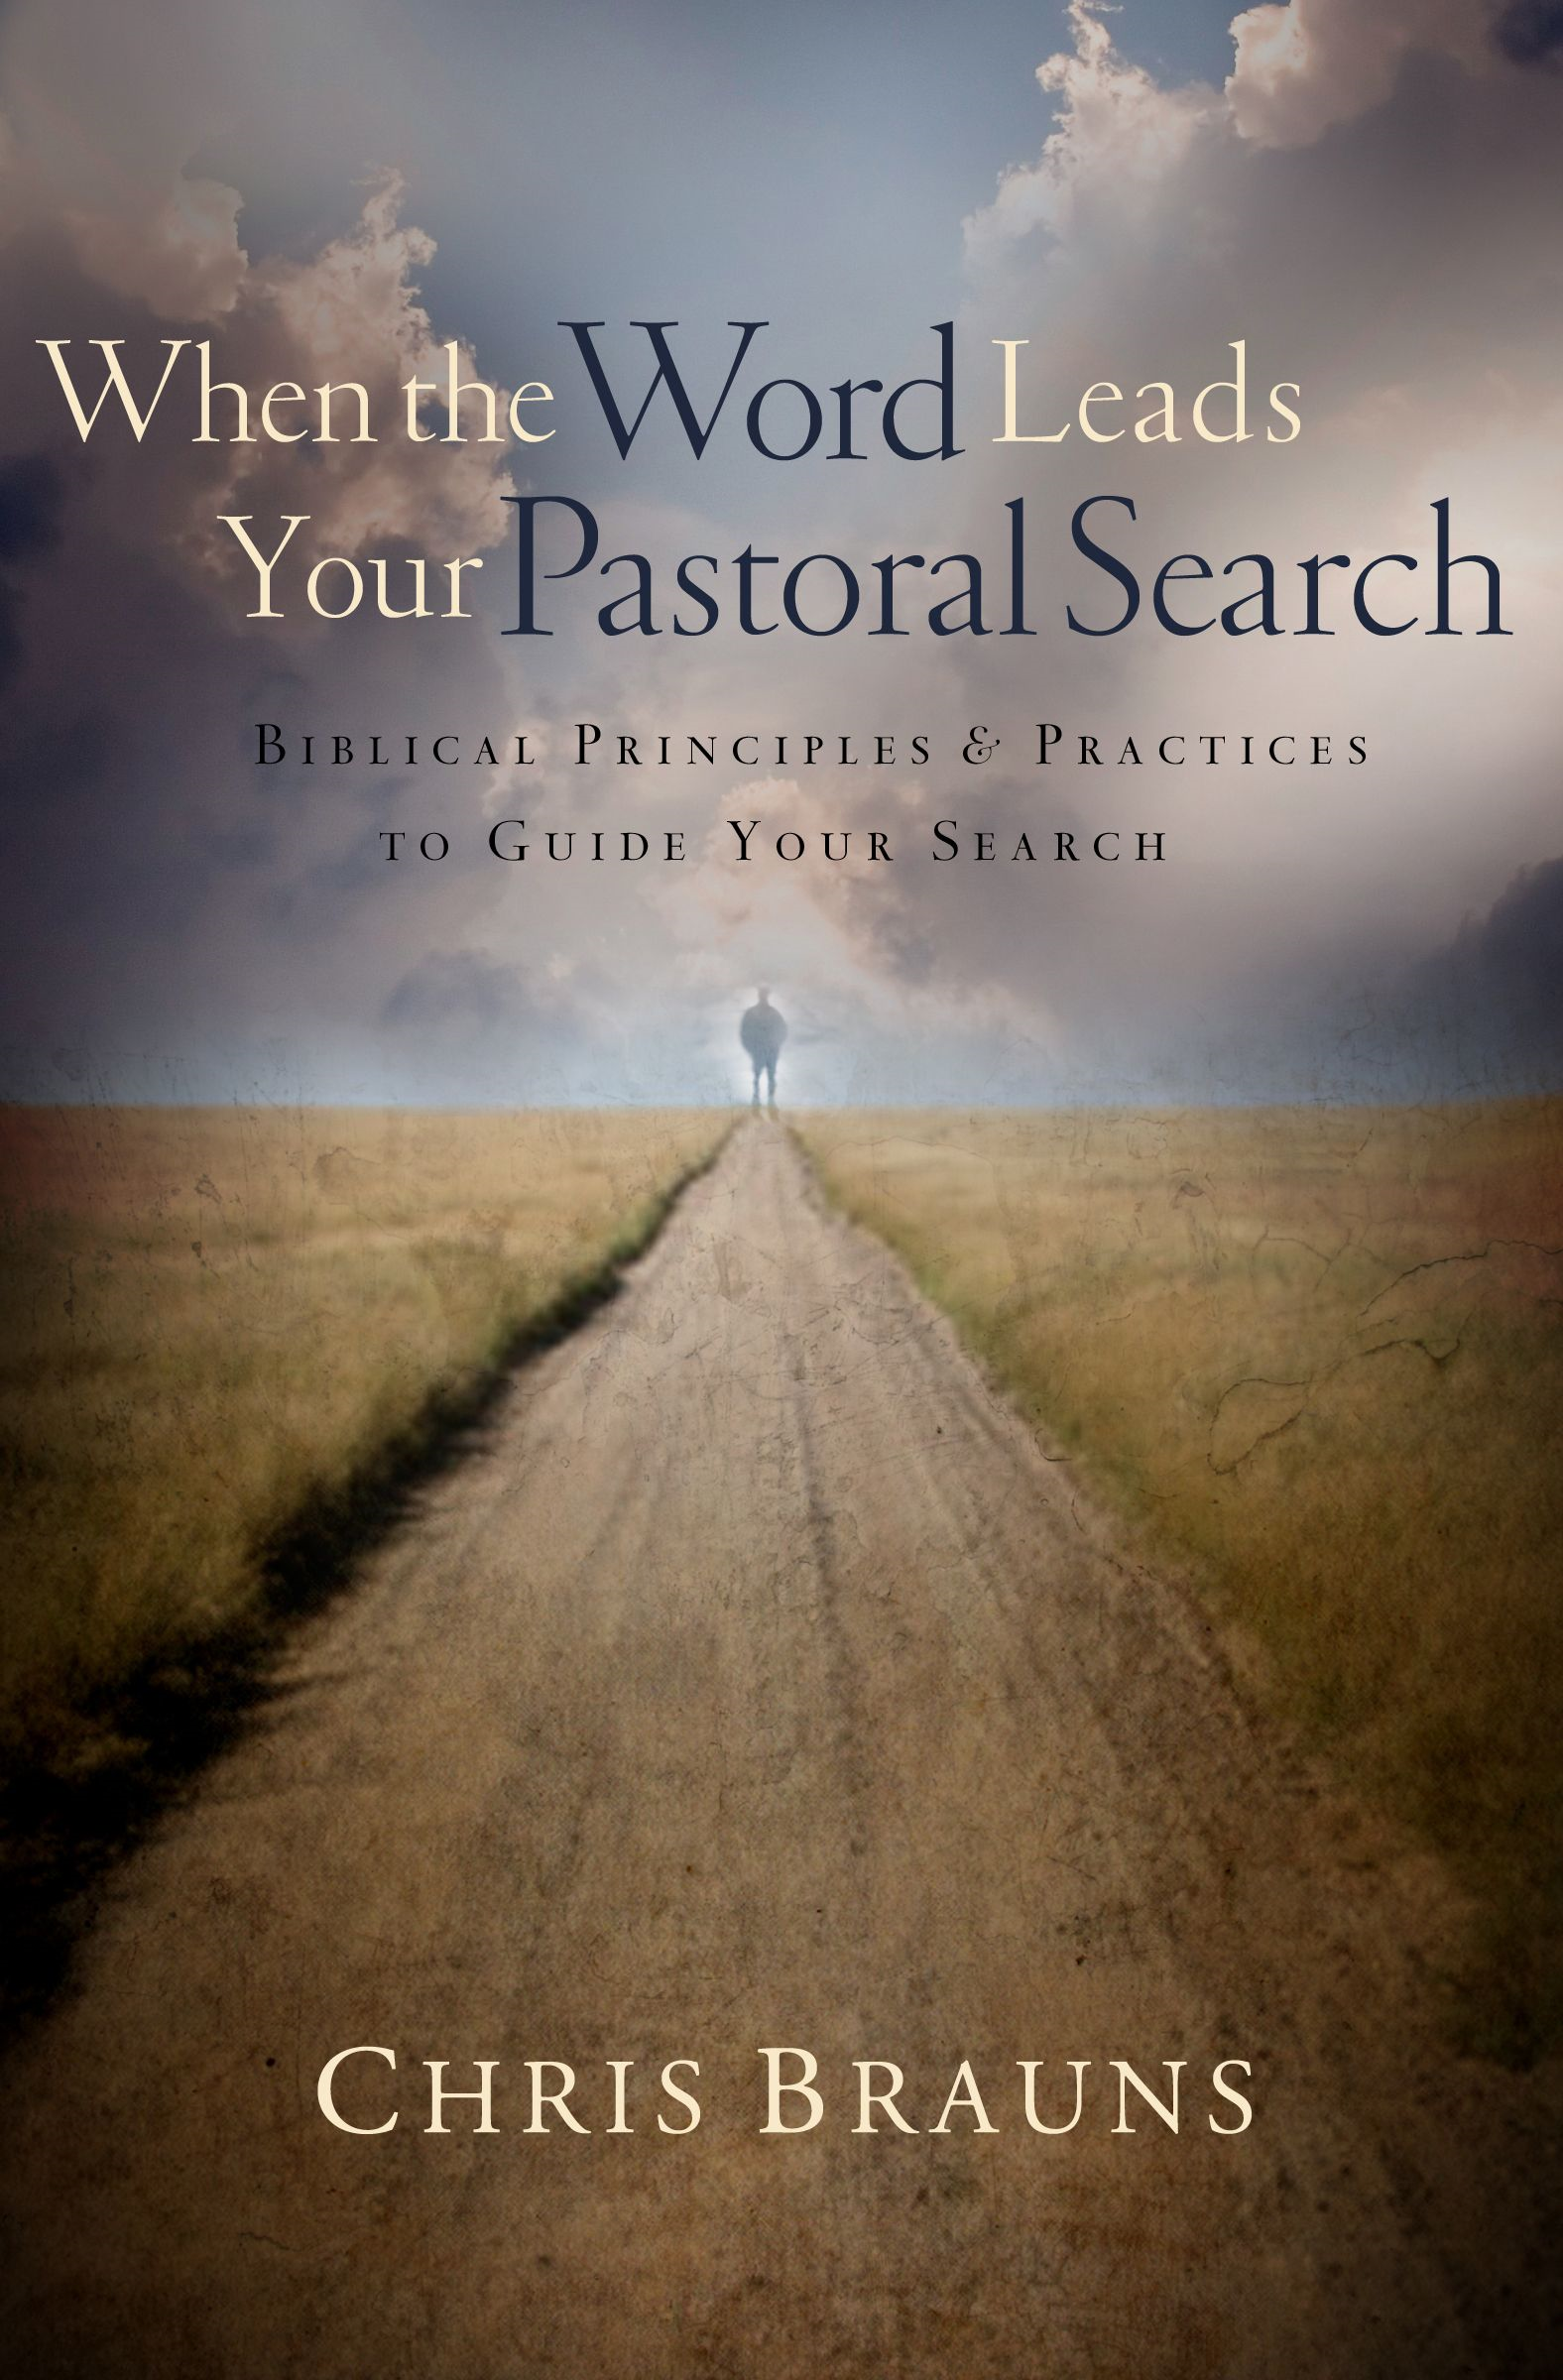 When the Word Leads Your Pastoral Search By: Chris Brauns